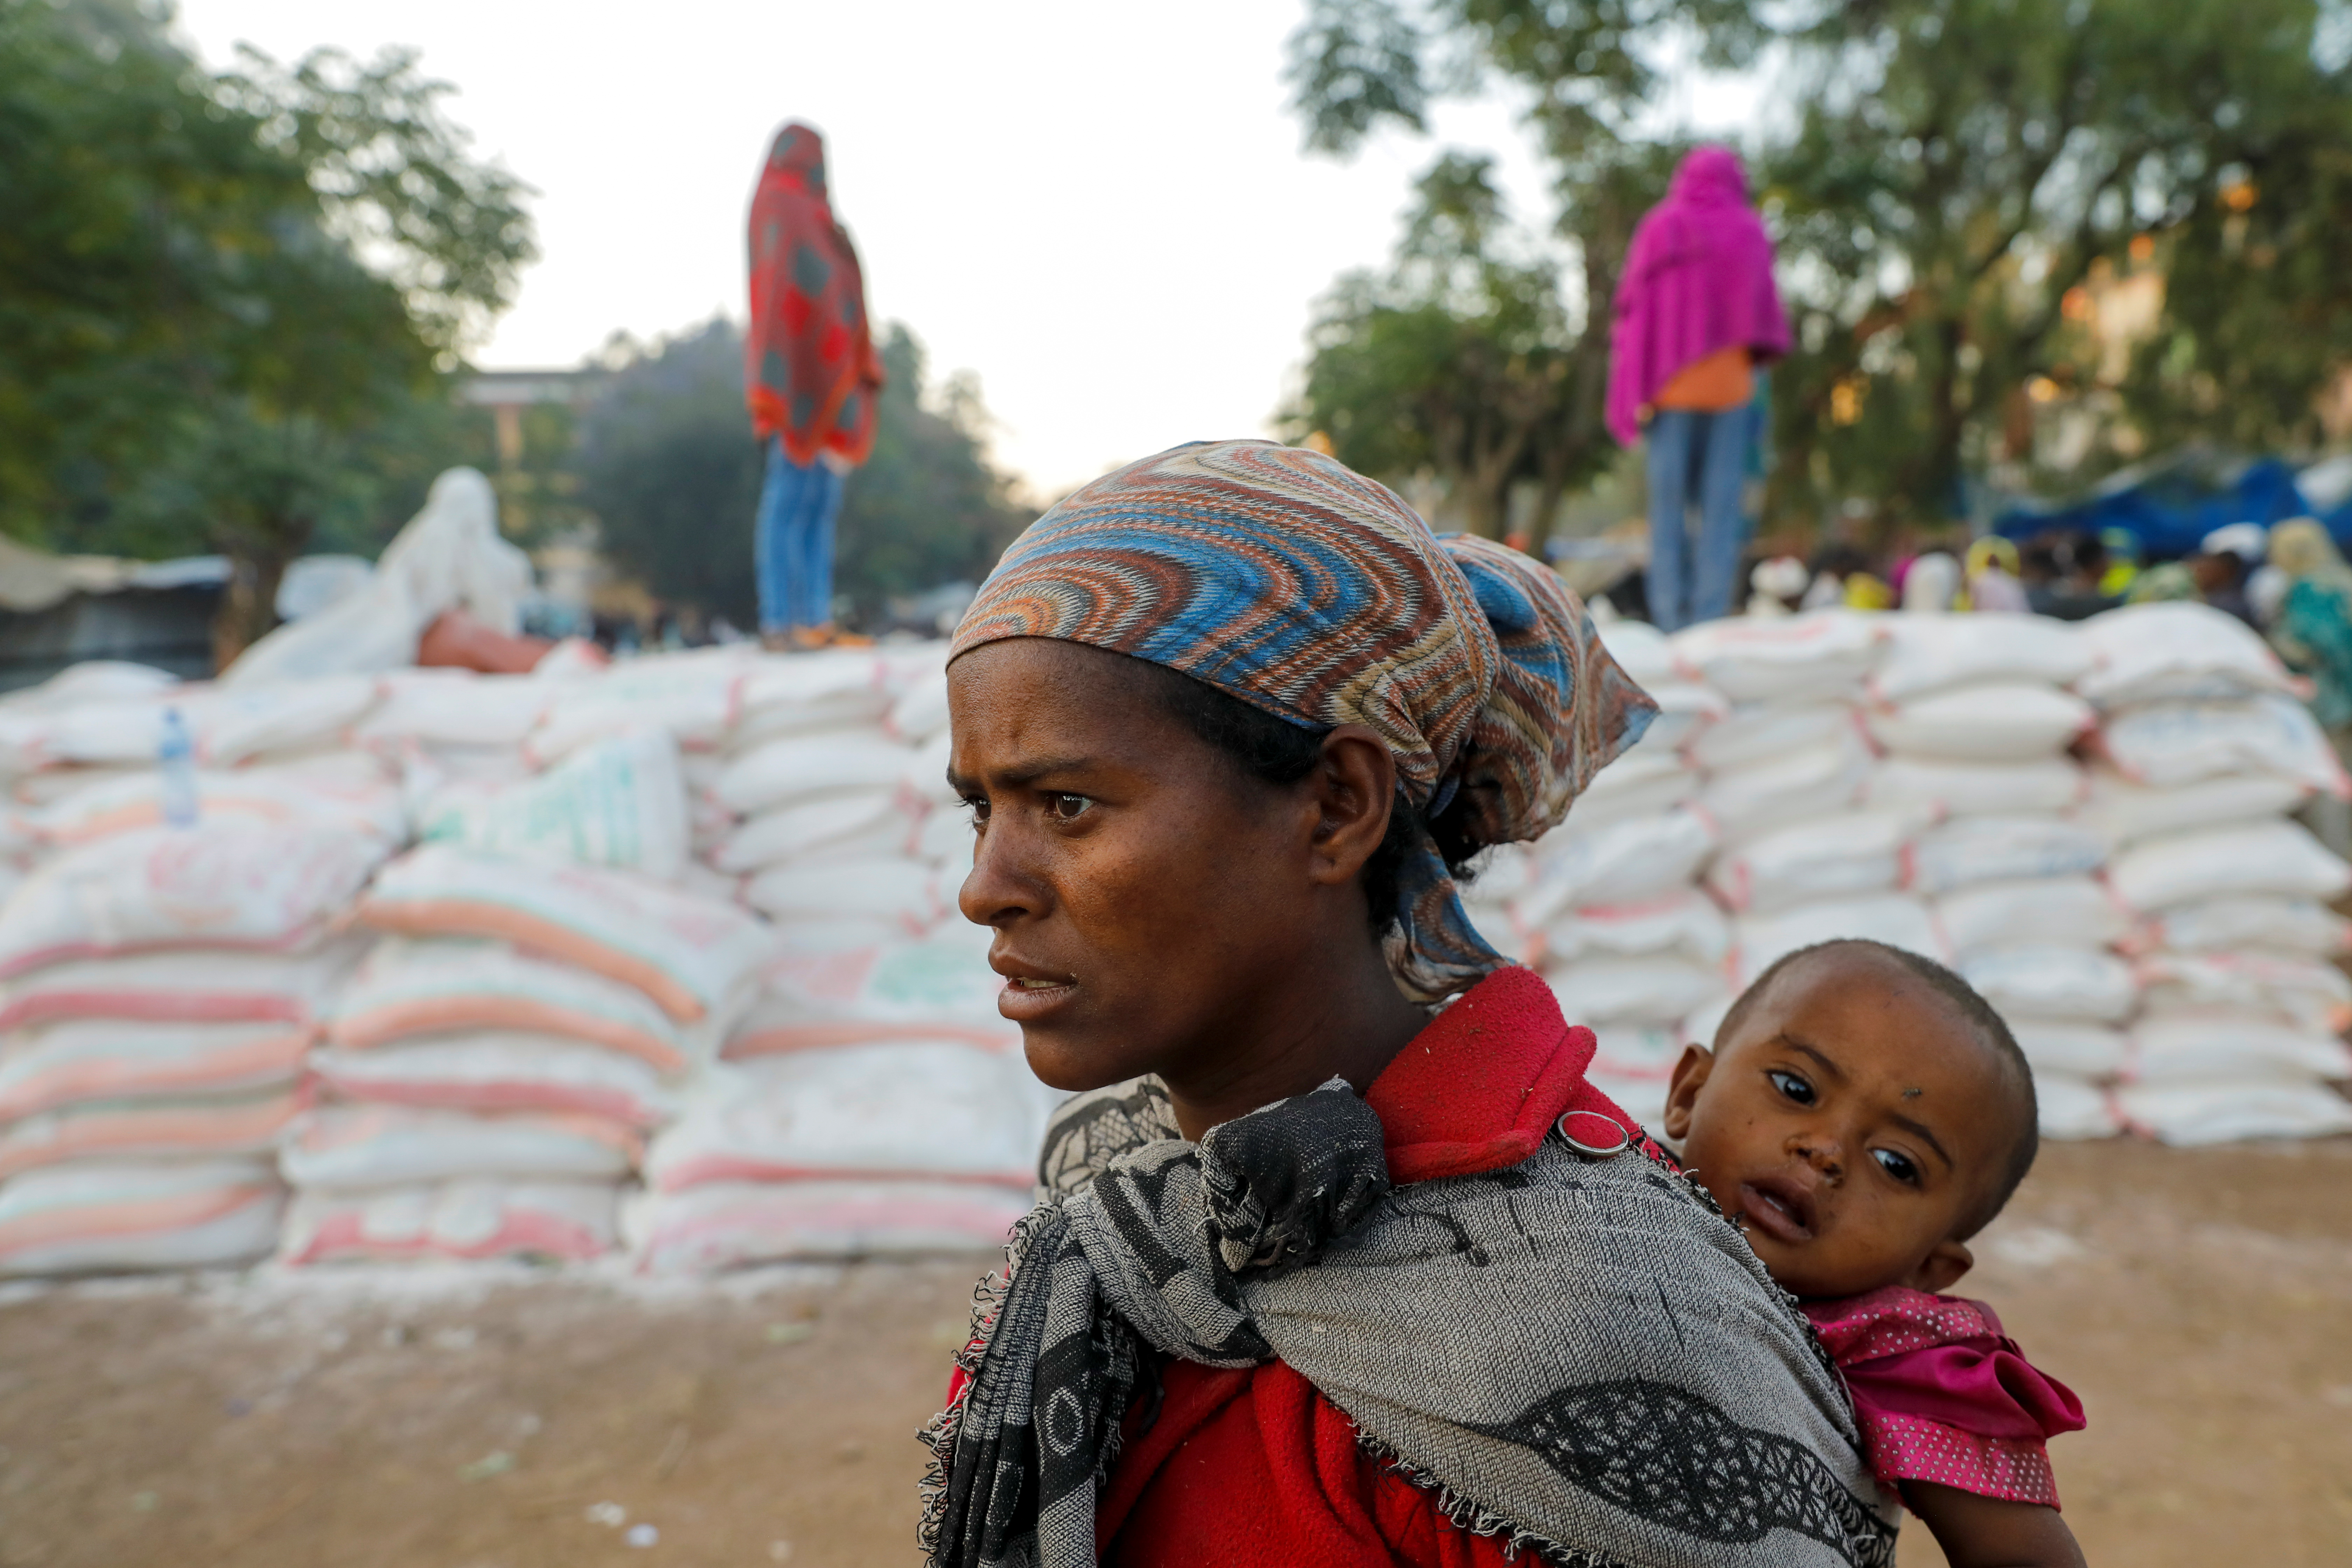 A woman carries an infant as she queues in line for food, at the Tsehaye primary school, which was turned into a temporary shelter for people displaced by conflict, in the town of Shire, Tigray region, Ethiopia, March 15, 2021.   REUTERS/Baz Ratner